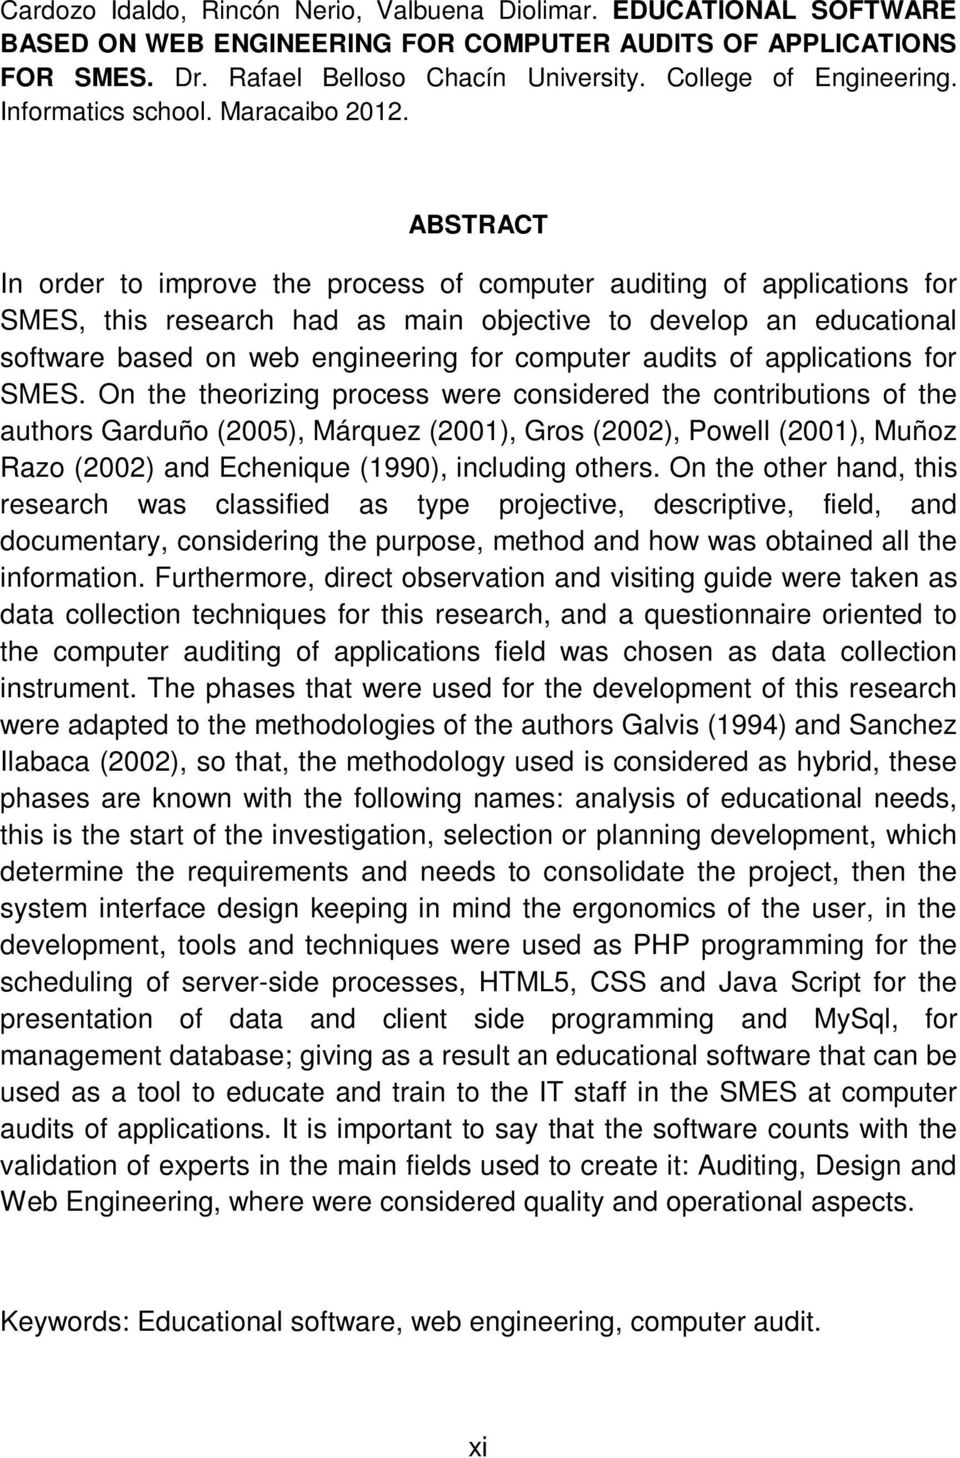 ABSTRACT In order to improve the process of computer auditing of applications for SMES, this research had as main objective to develop an educational software based on web engineering for computer